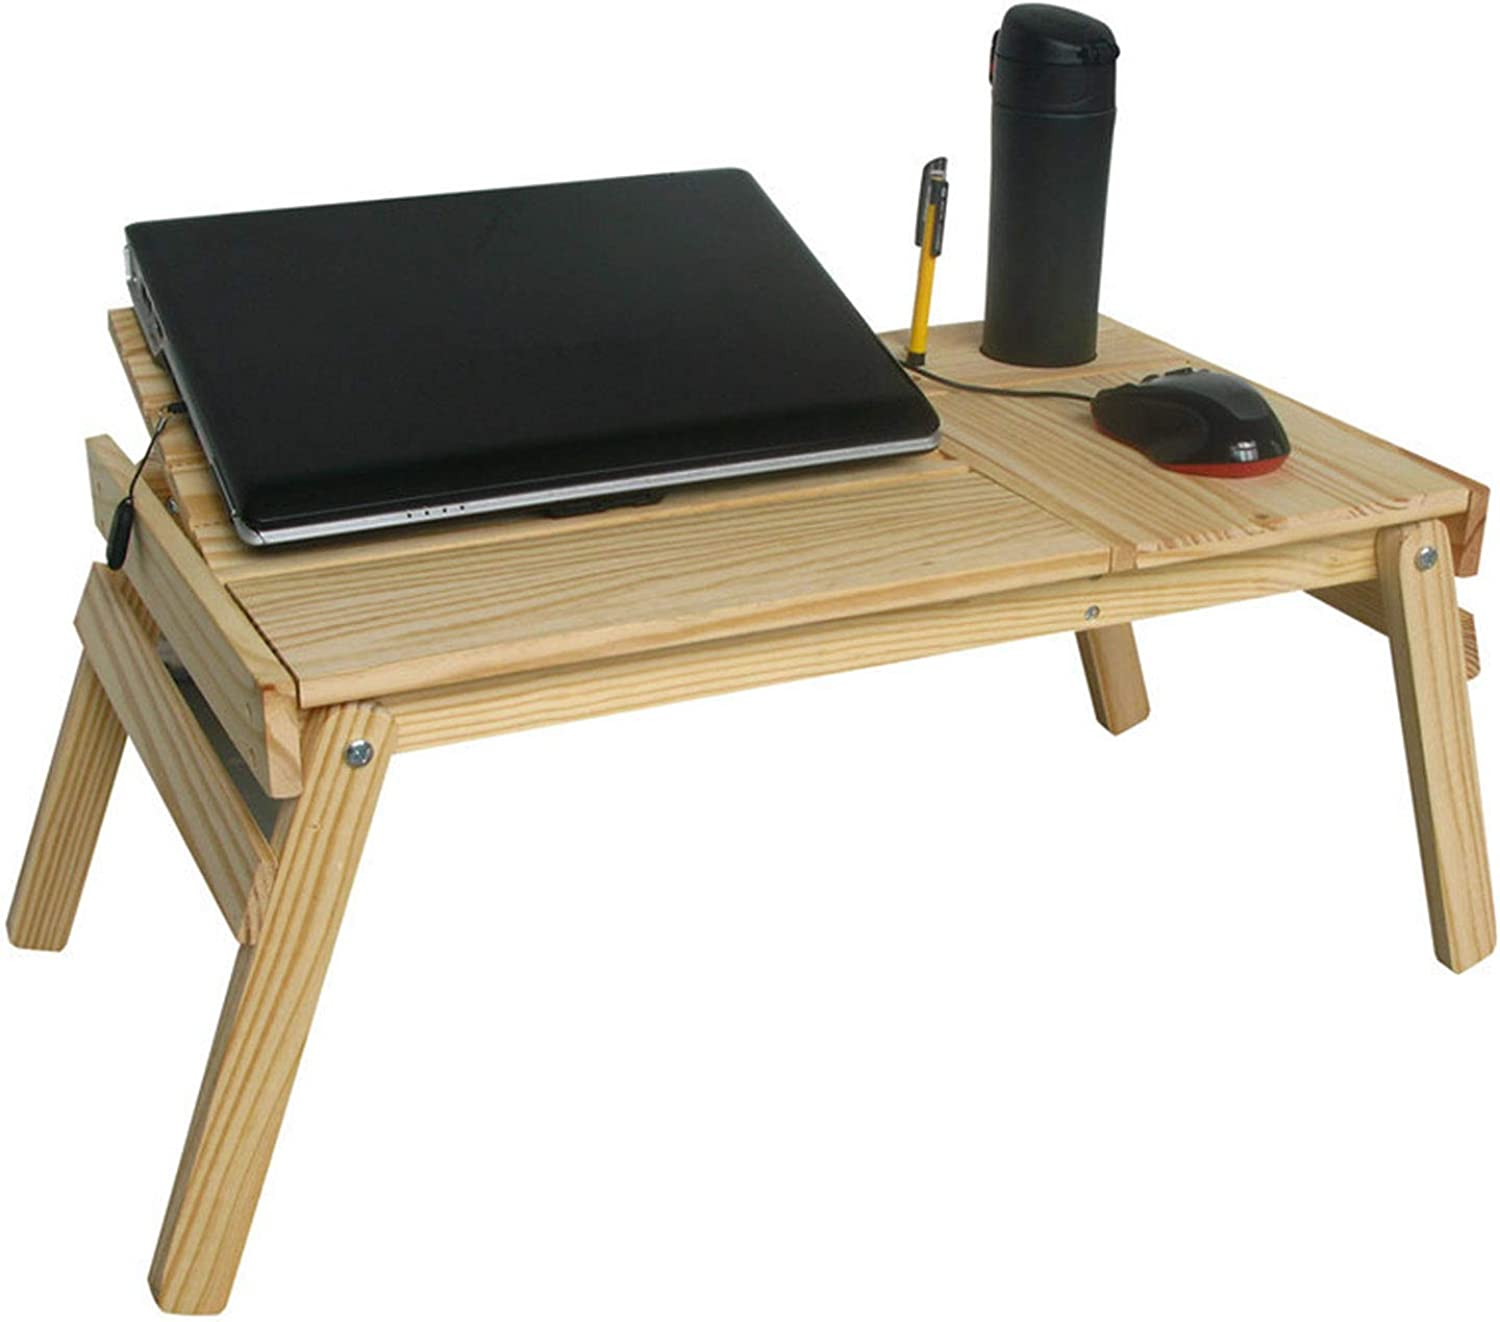 Solid Wood Laptop Desk Simple Environmental No Paint Folding Desk Ideal for Students Dormitory Home Bed Picnic Use